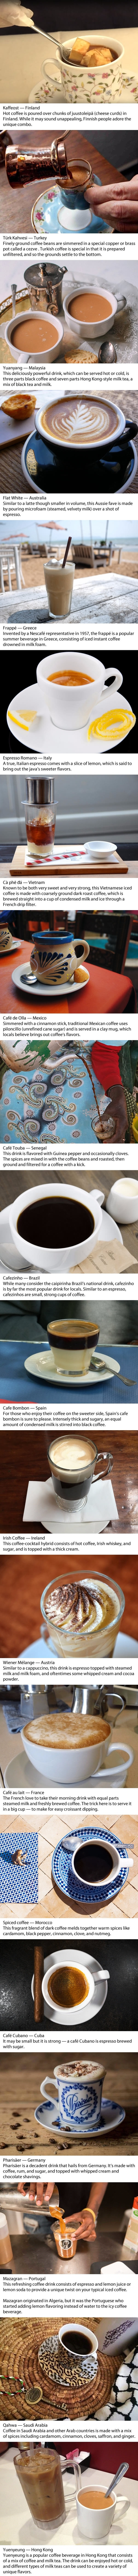 Popular coffee drinks around the world